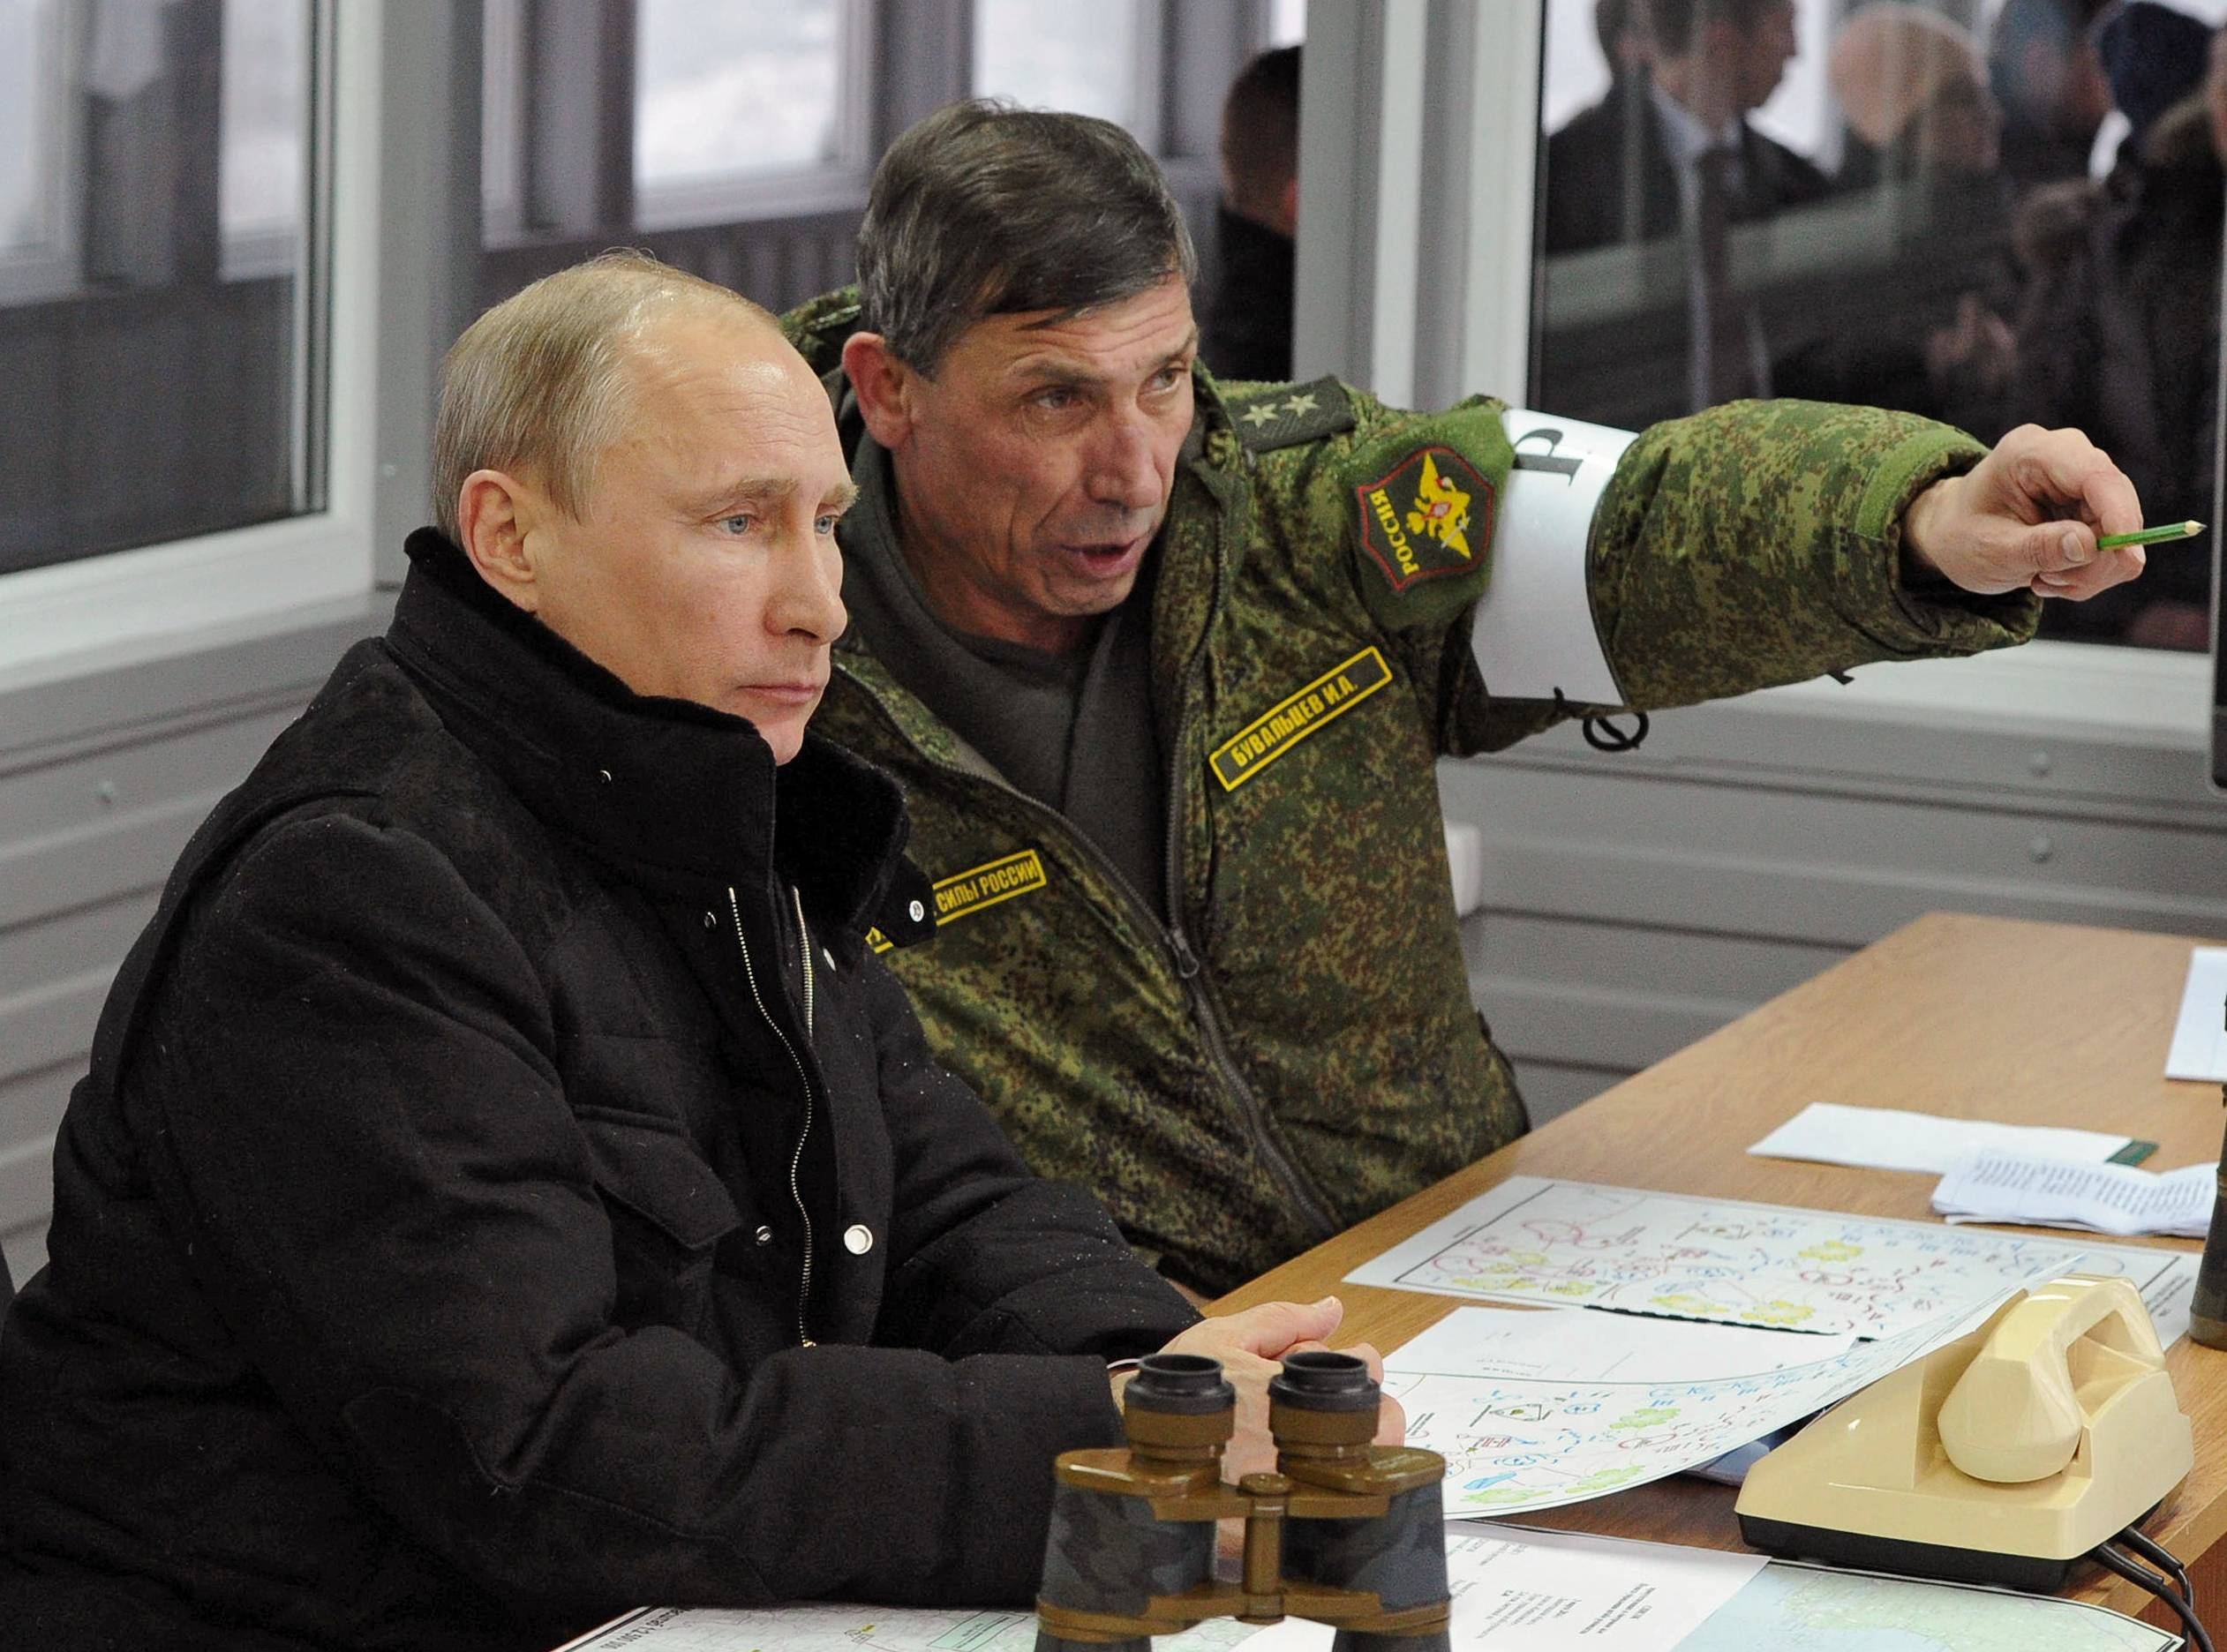 Russian President Vladimir Putin listens to Gen. Ivan Buvaltsev, right, as they observe a military exercise near St. Petersburg, Russia, Monday. Pro-Russian troops held all Ukrainian border posts Monday in Crimea, as well as all military facilities and a key ferry terminal, cementing their stranglehold on the strategic Ukrainian peninsula.